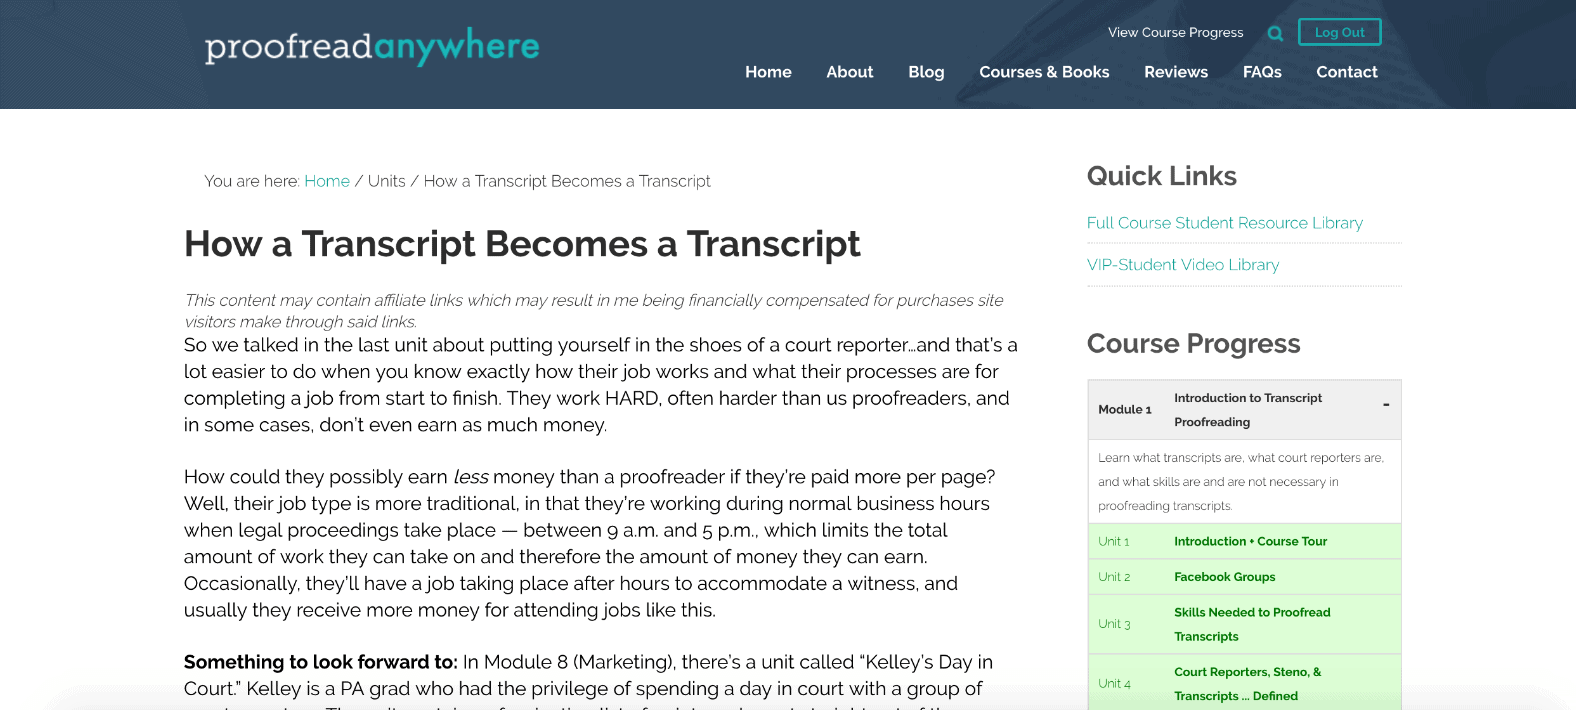 Proofread Anywhere Transcript Proofreading Screenshot